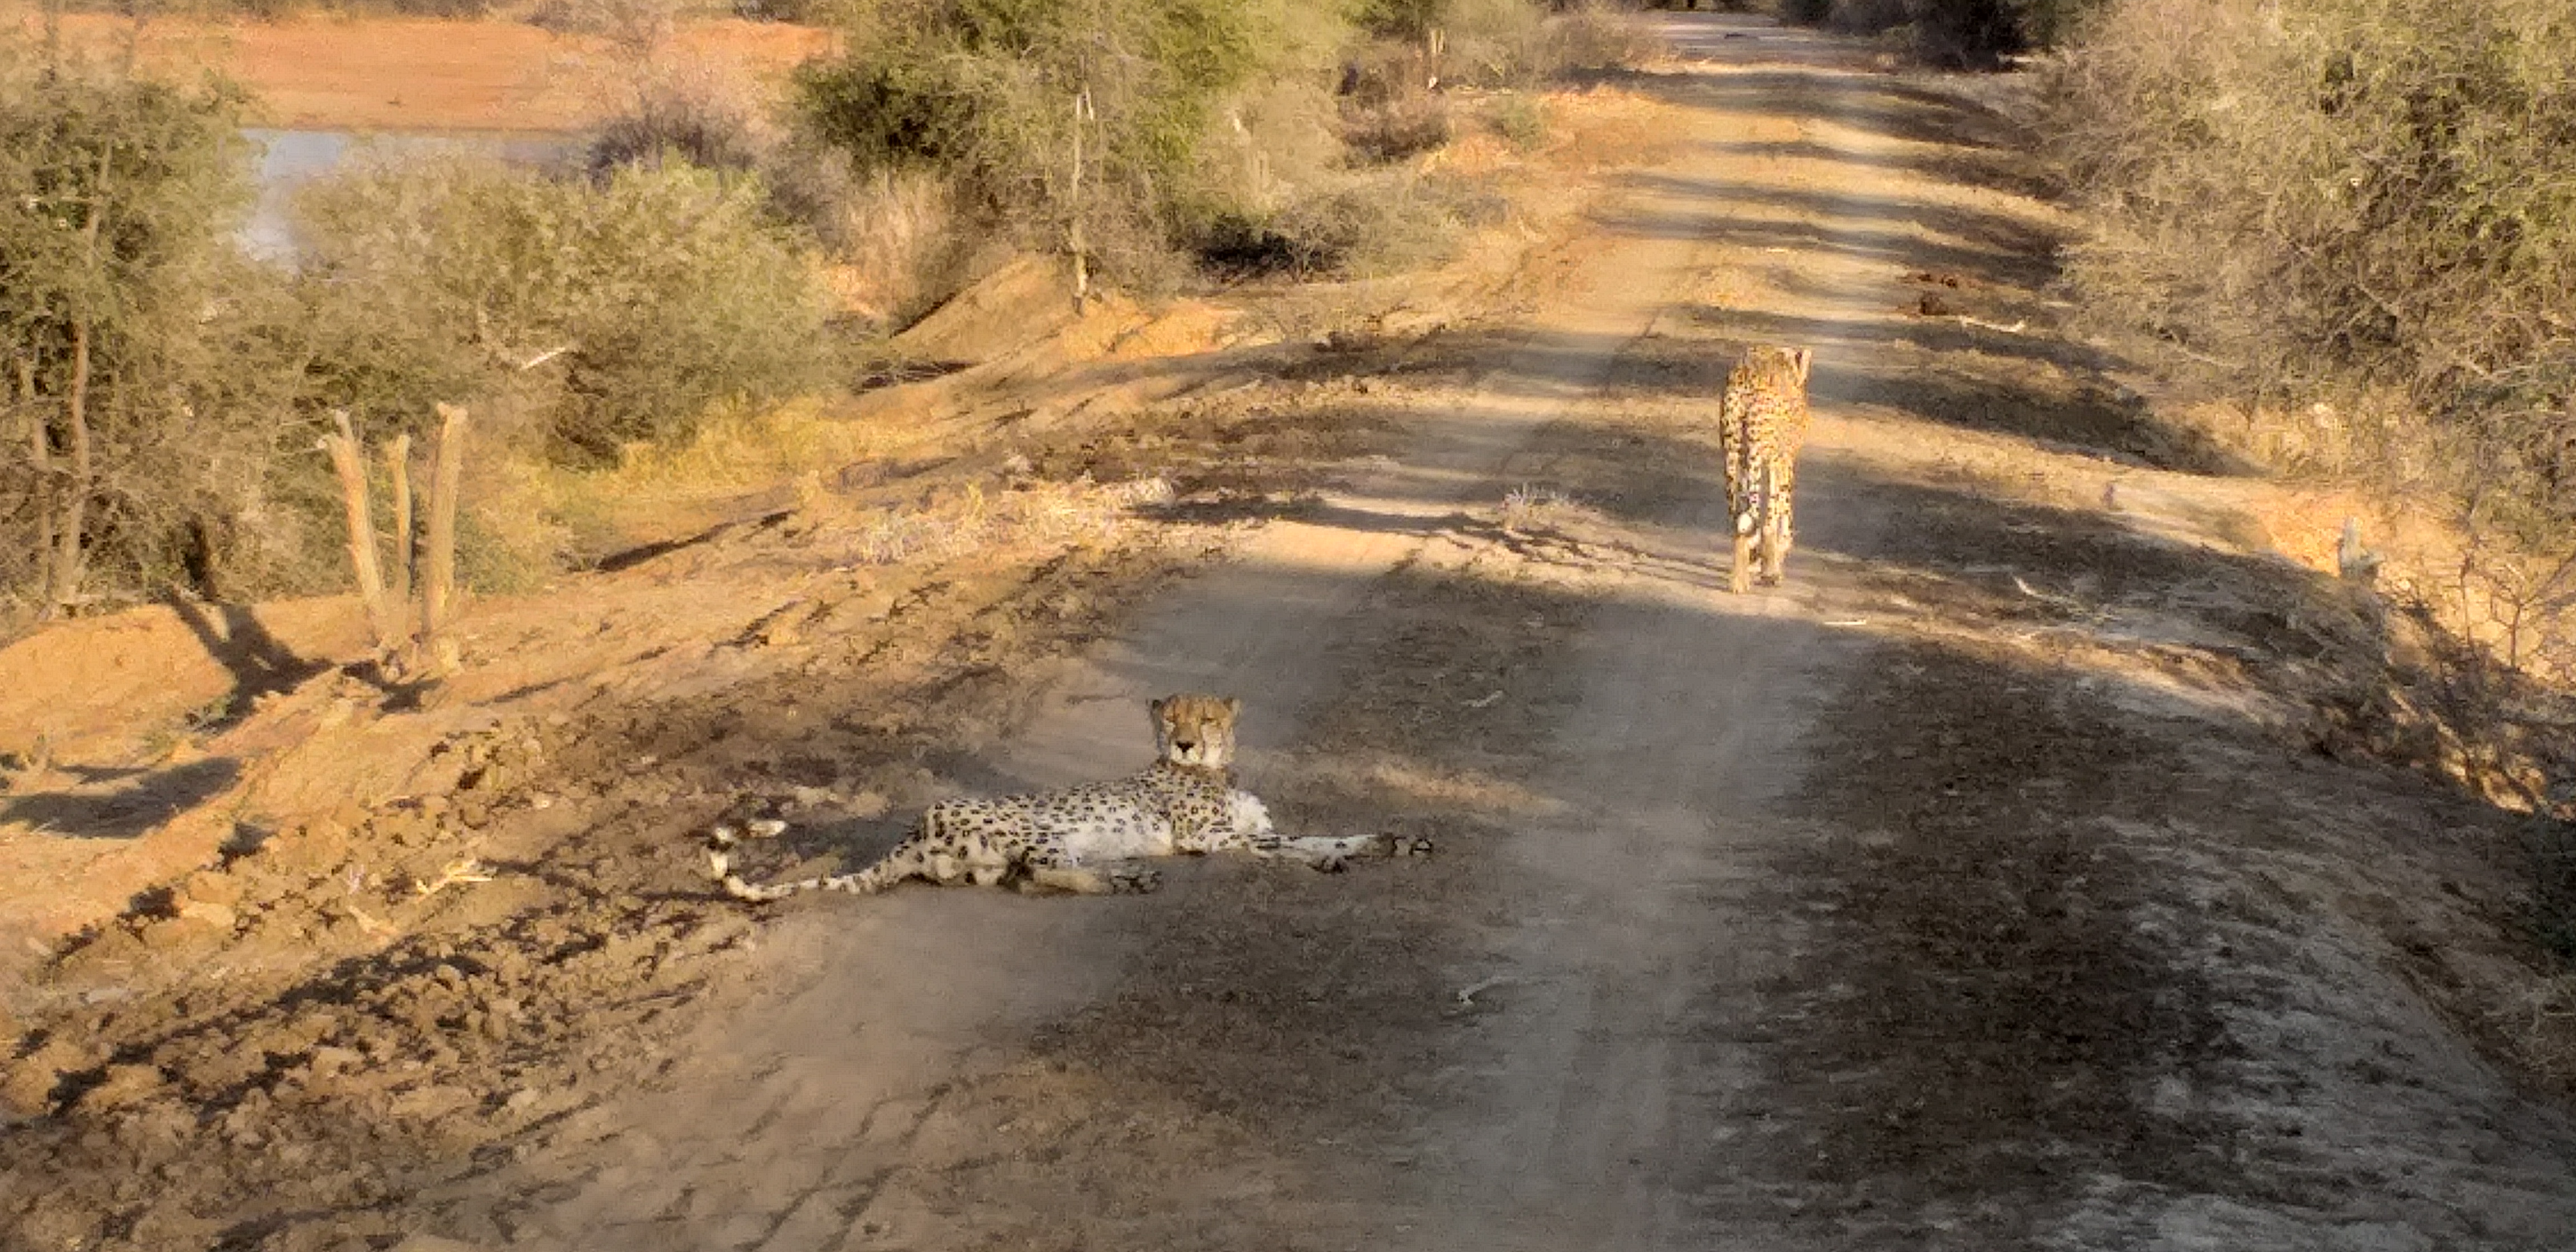 Cheetah, one of Afric's most endangered species